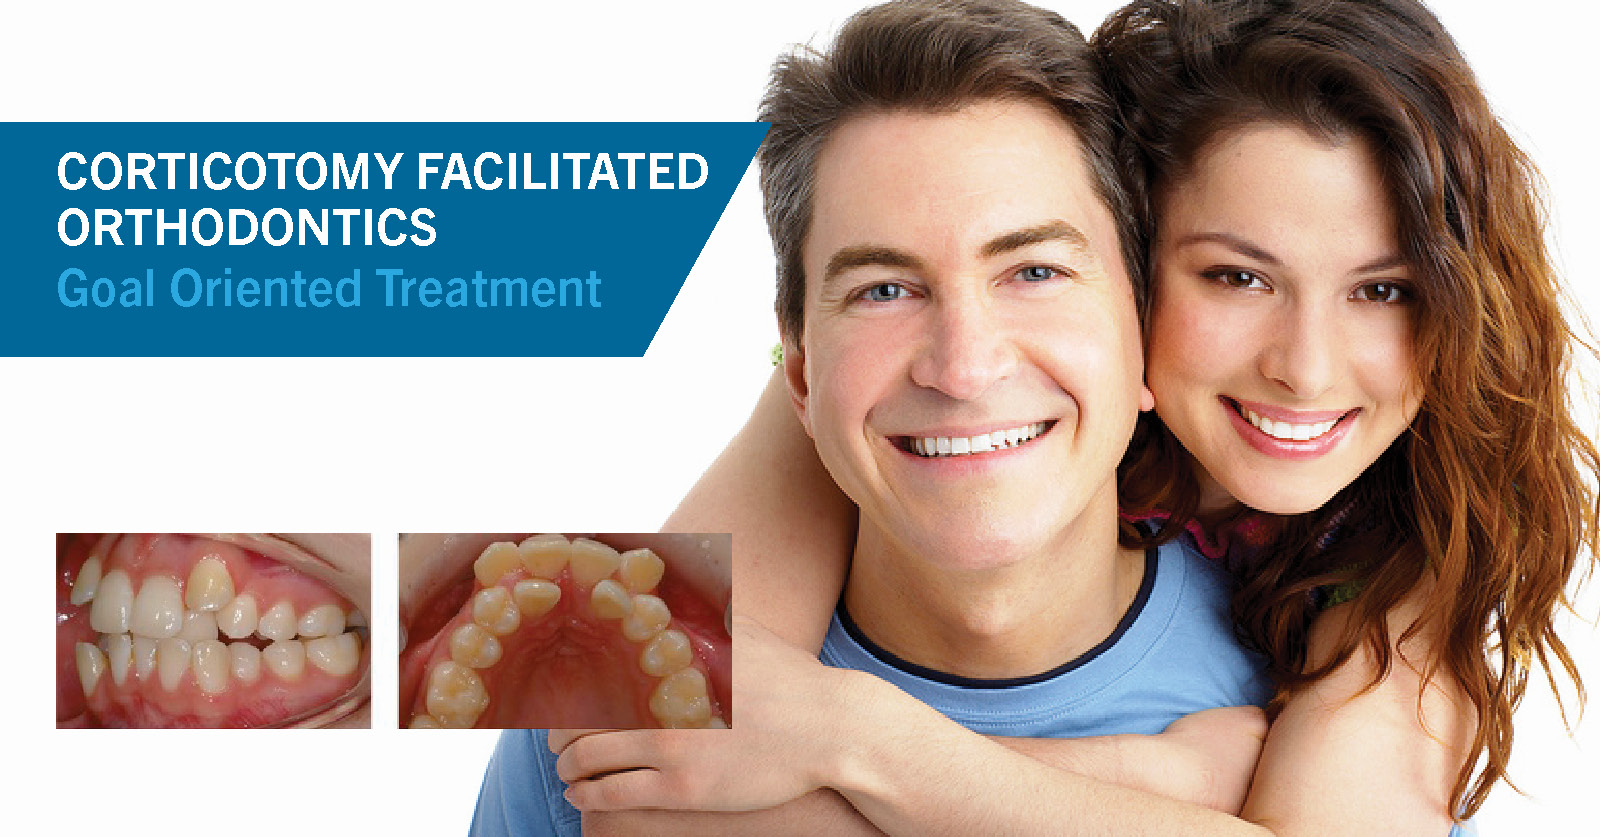 Goal Oriented Treatment with Corticotomy Facilitated Orthodontics